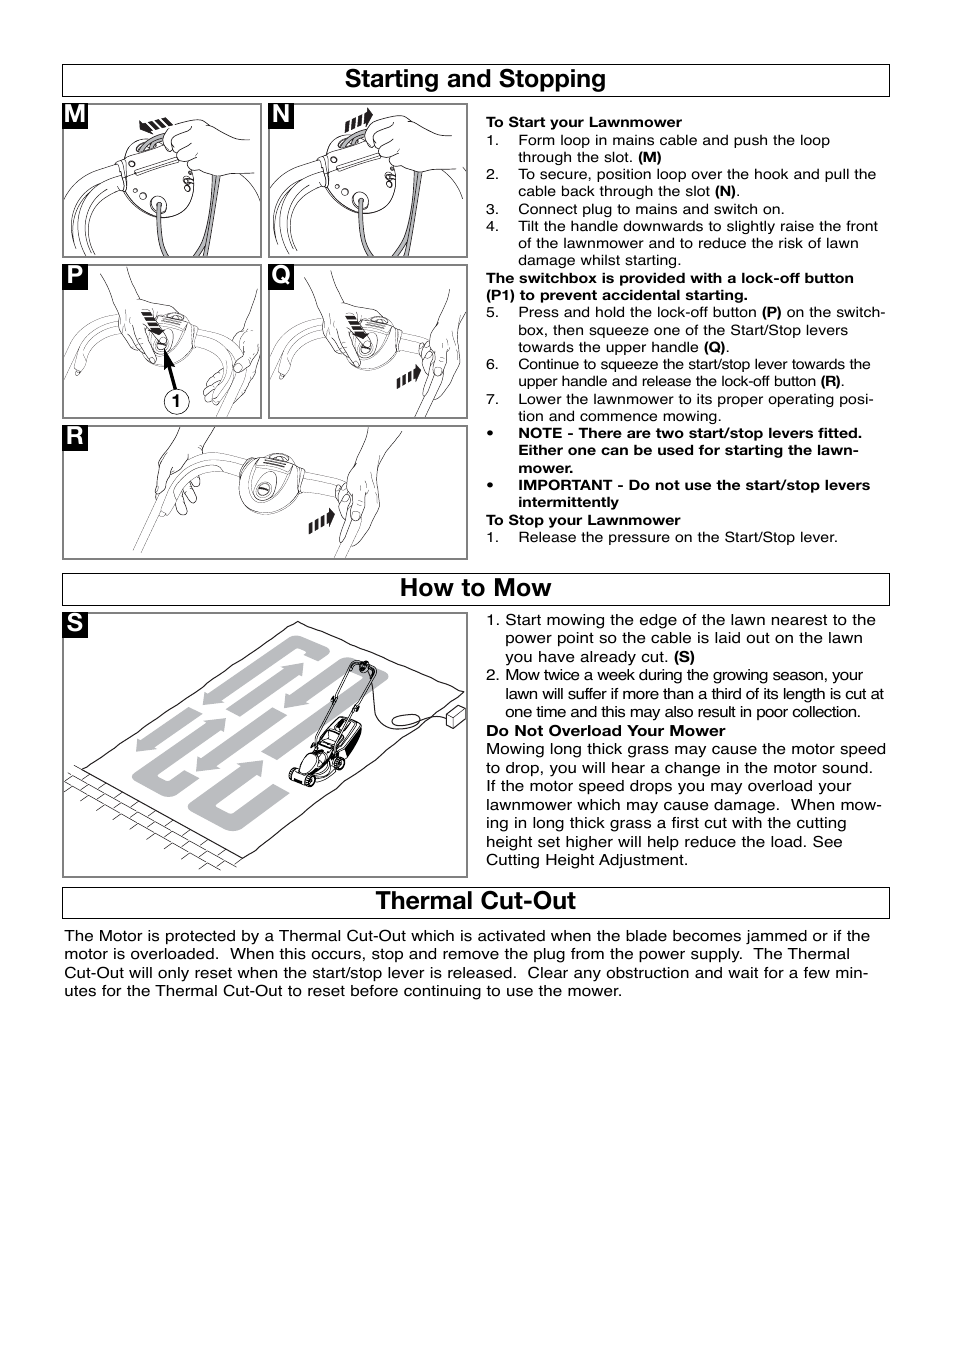 Starting and stopping, How to mow, Thermal cut-out | Flymo ROLLERMO RM032  User Manual | Page 6 / 10